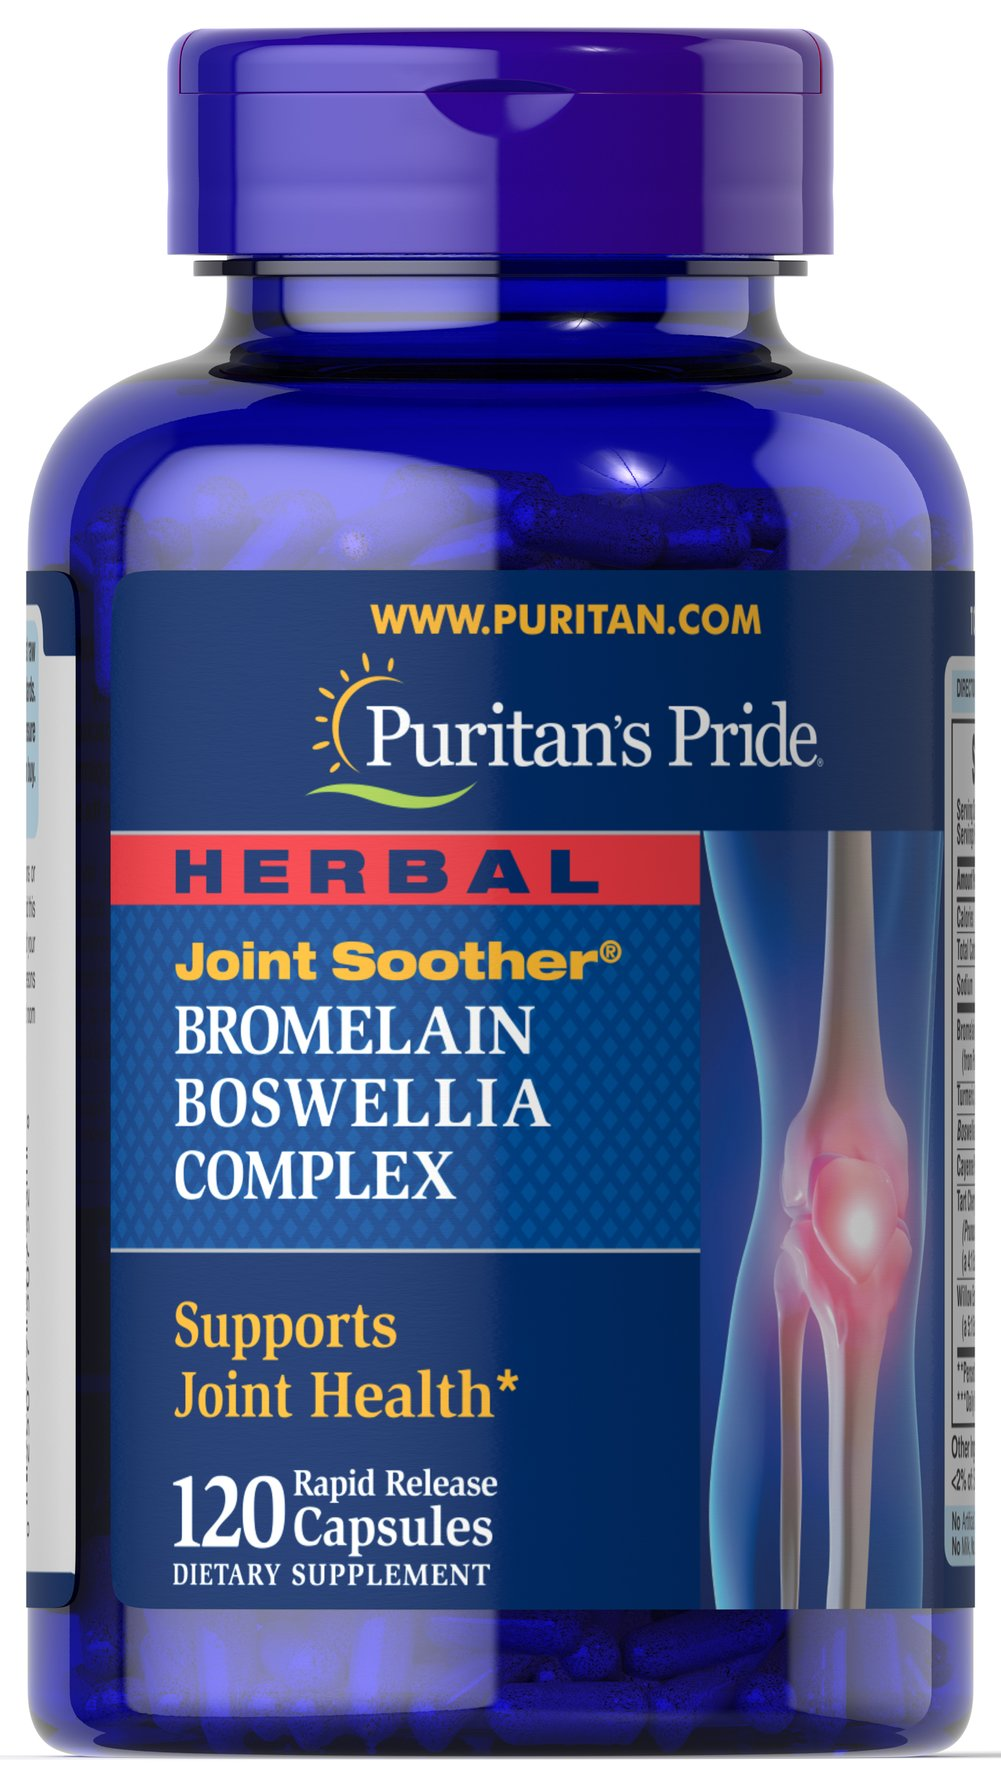 Herbal Joint Soother® Bromelain Boswellia Complex with Turmeric  120 Capsules  $37.99